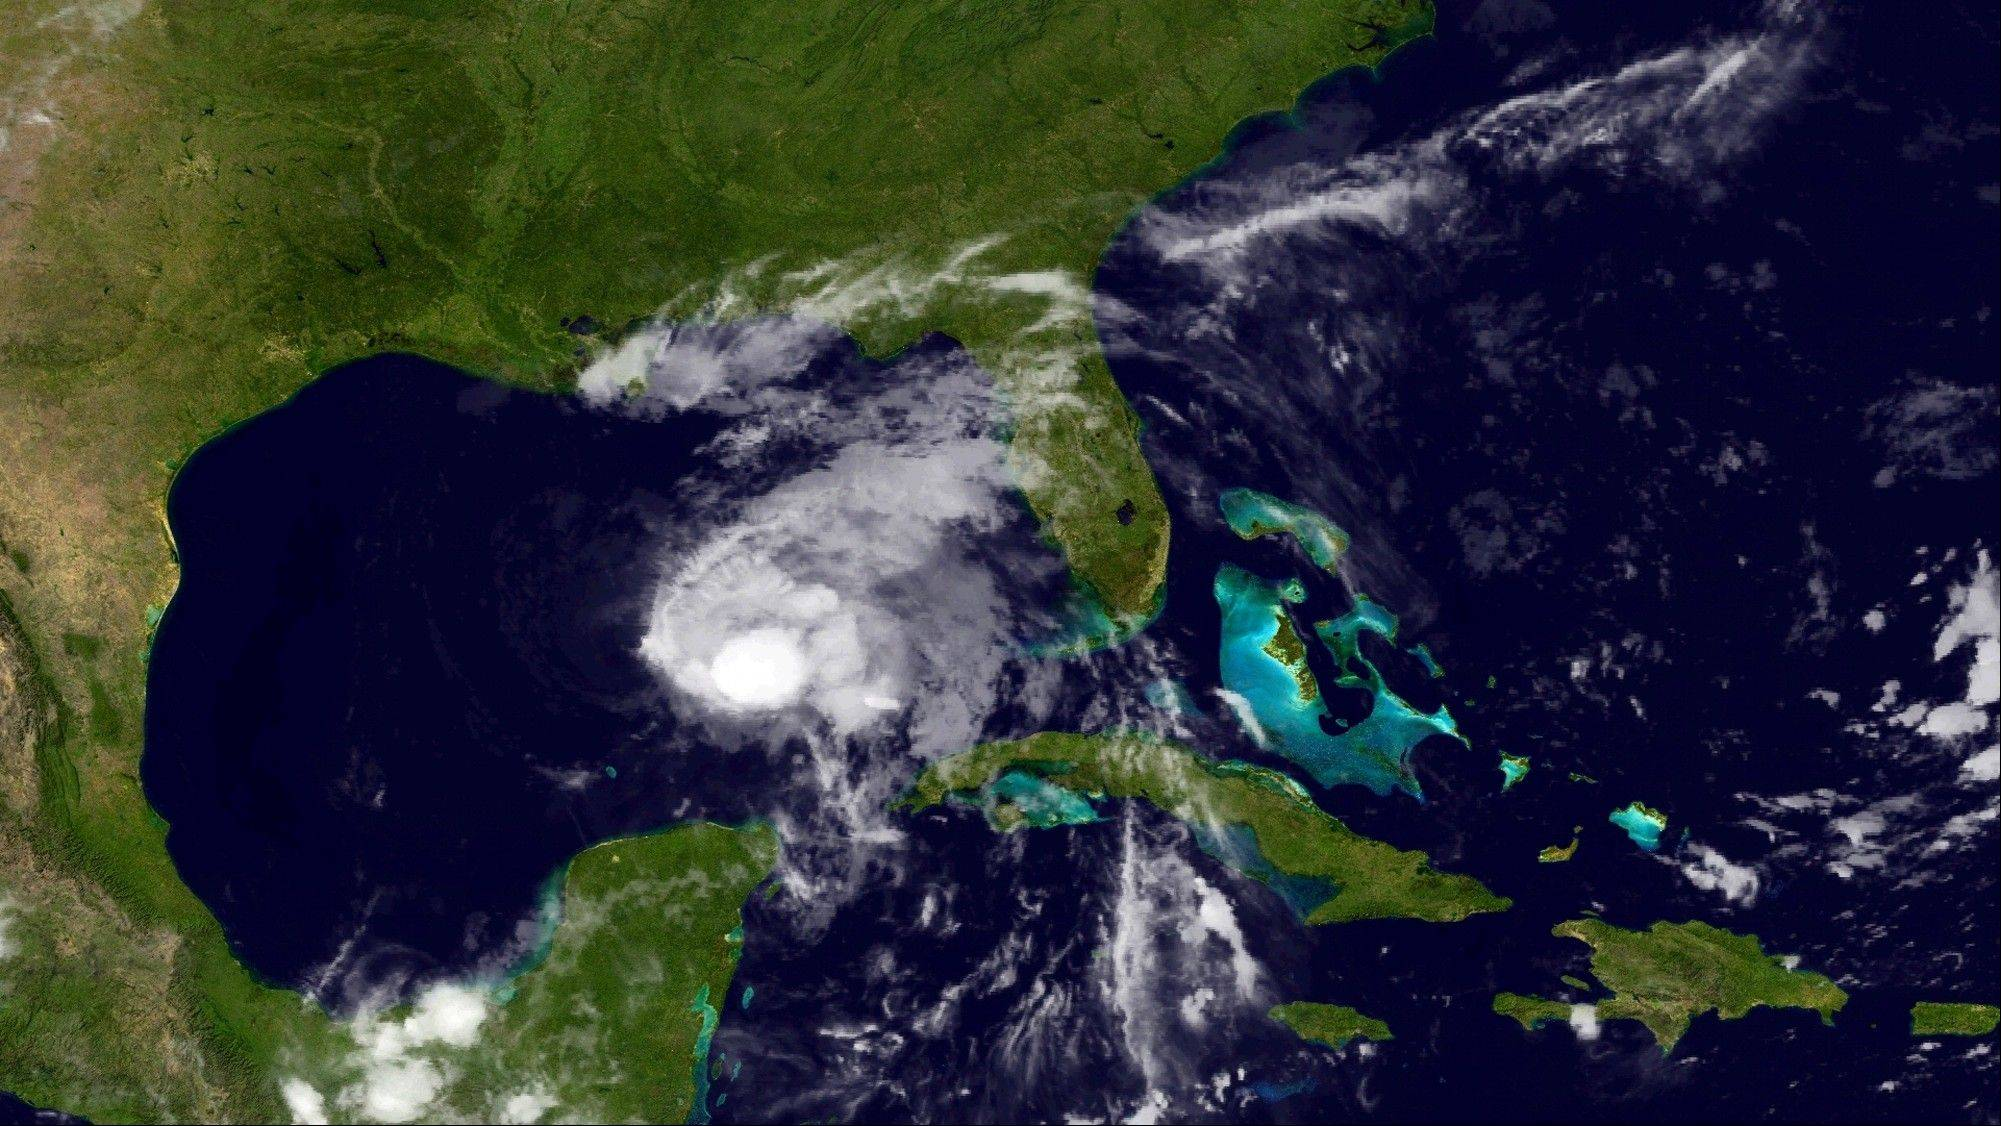 This image provided by NOAA shows Tropical Storm Karen taken late Thursday night Oct. 3, 2013. The National Hurricane Center in Miami said late Thursday that Karen was about 340 miles (547 kilometers) south of the mouth of the Mississippi River and had maximum sustained winds of 65 mph (100 kph) with higher gusts.